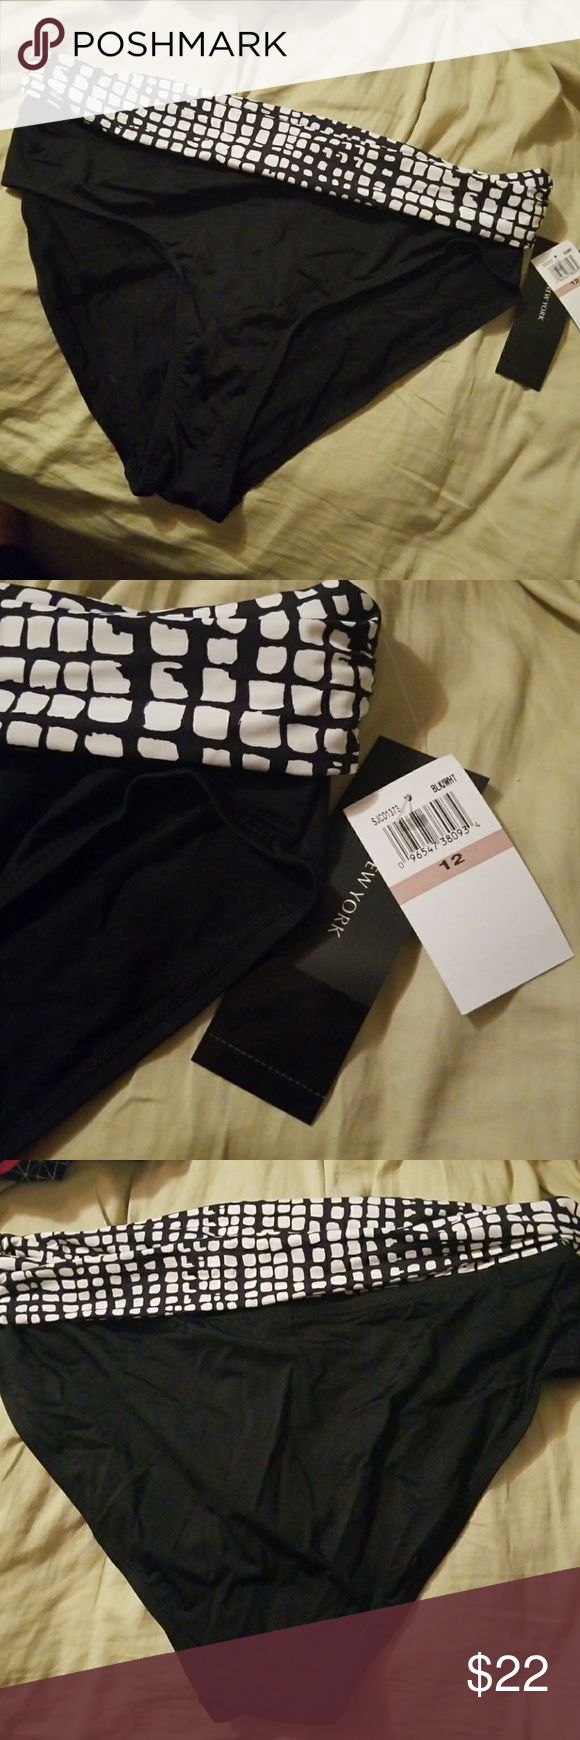 Jones new york NWT bikini bathing suit bottoms, 12 Size 12 bikini bathing suit bottoms, new with tags! Waistband is foldover style or can have as thick band. Colors are black and white. Jones New York Swim